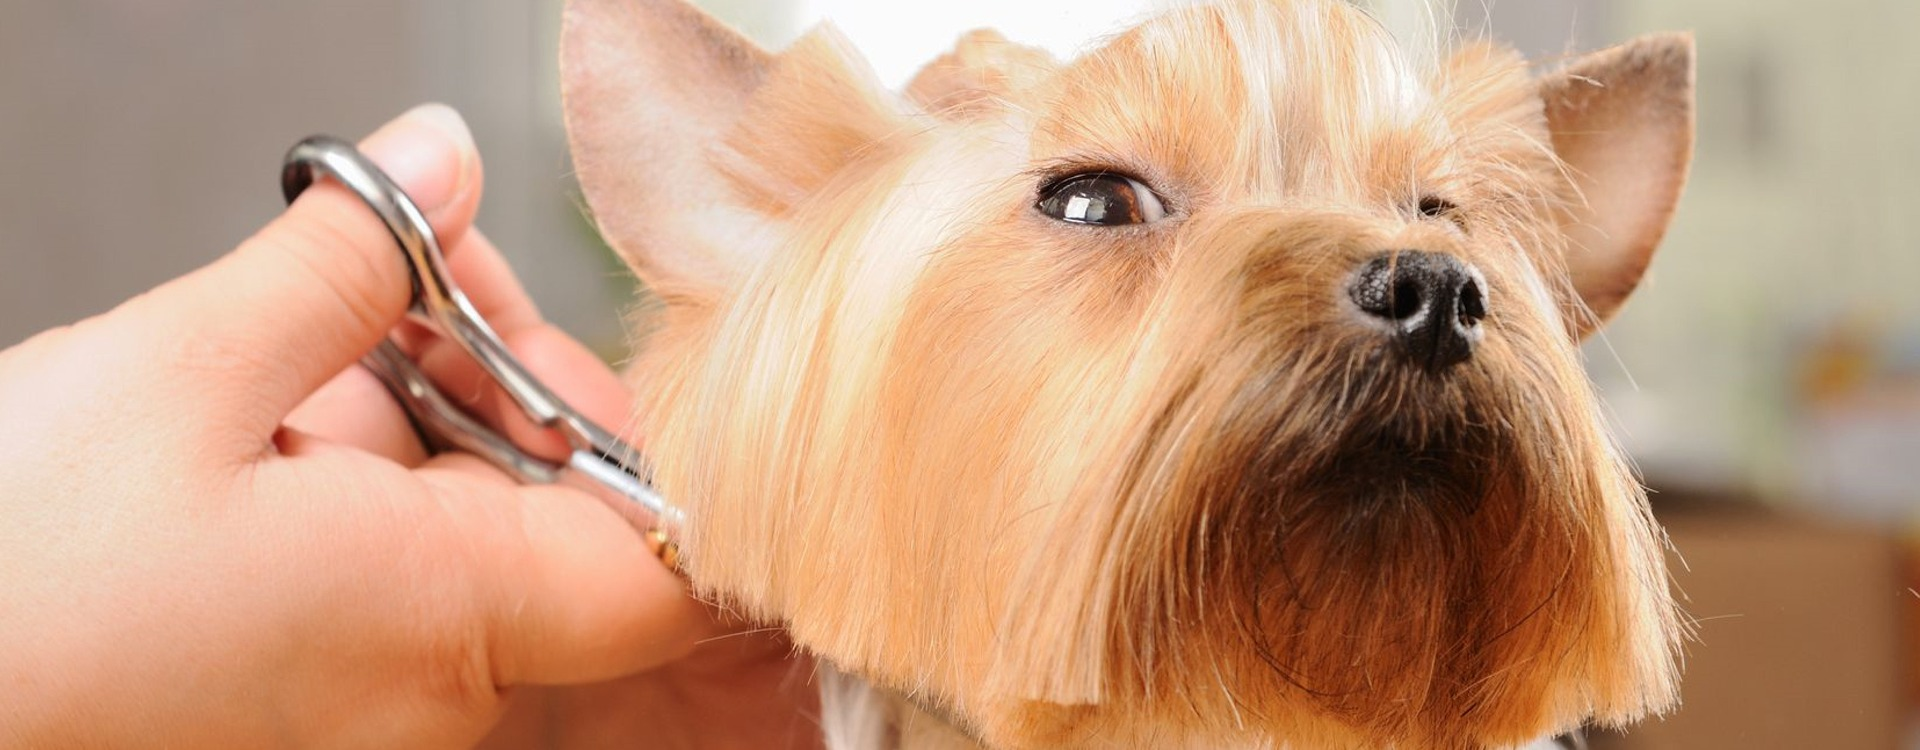 Dazzling Dogs Professional Dog Grooming